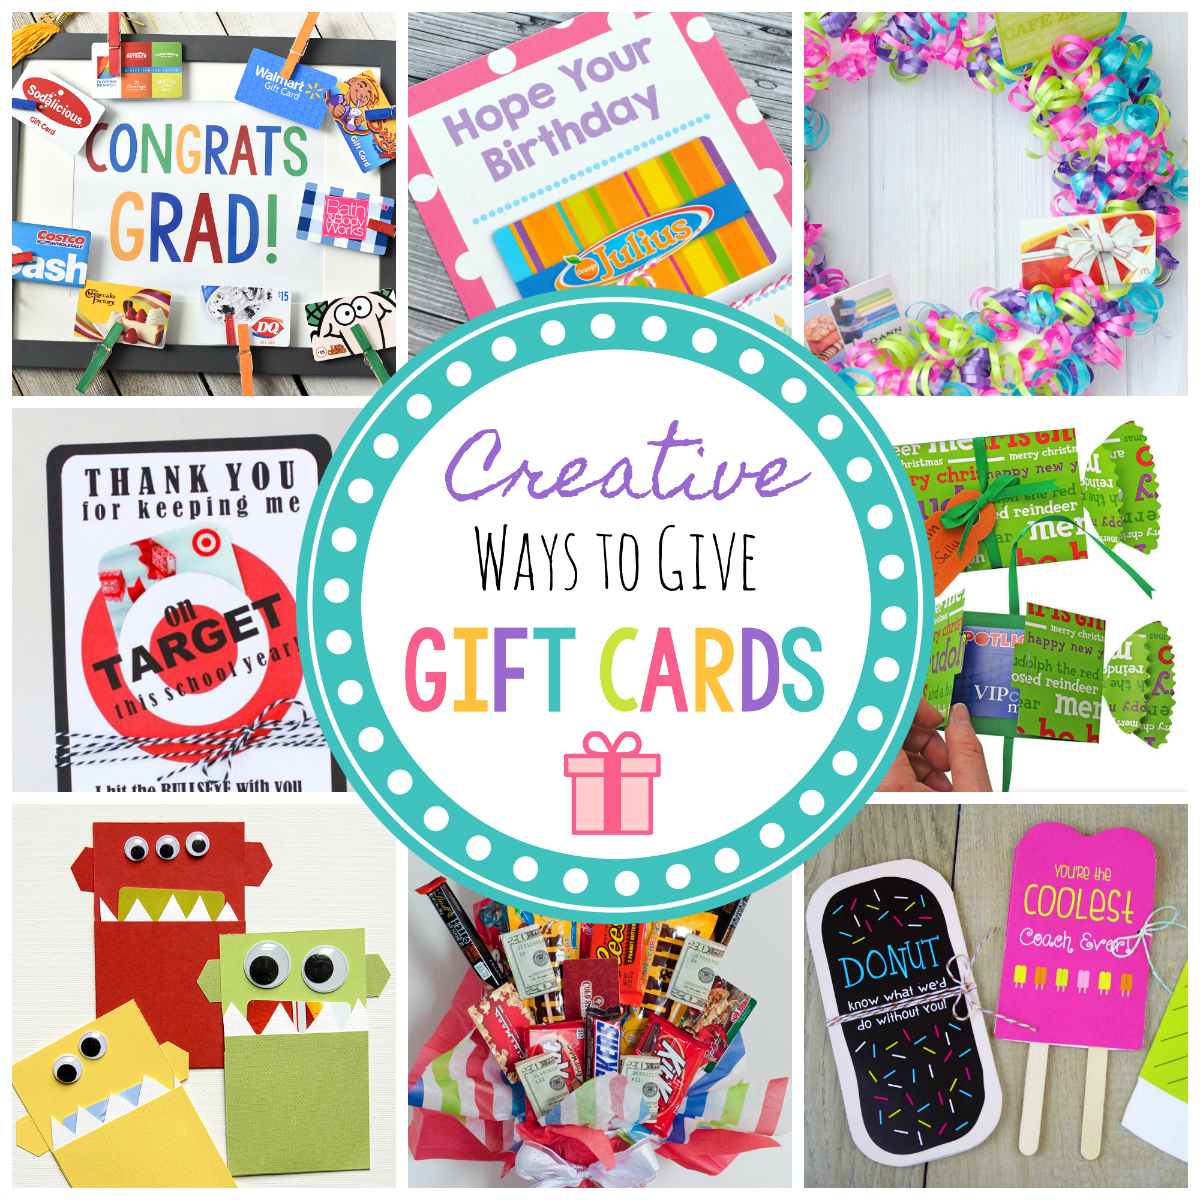 16 Fun Creative Ways To Give Gift Cards